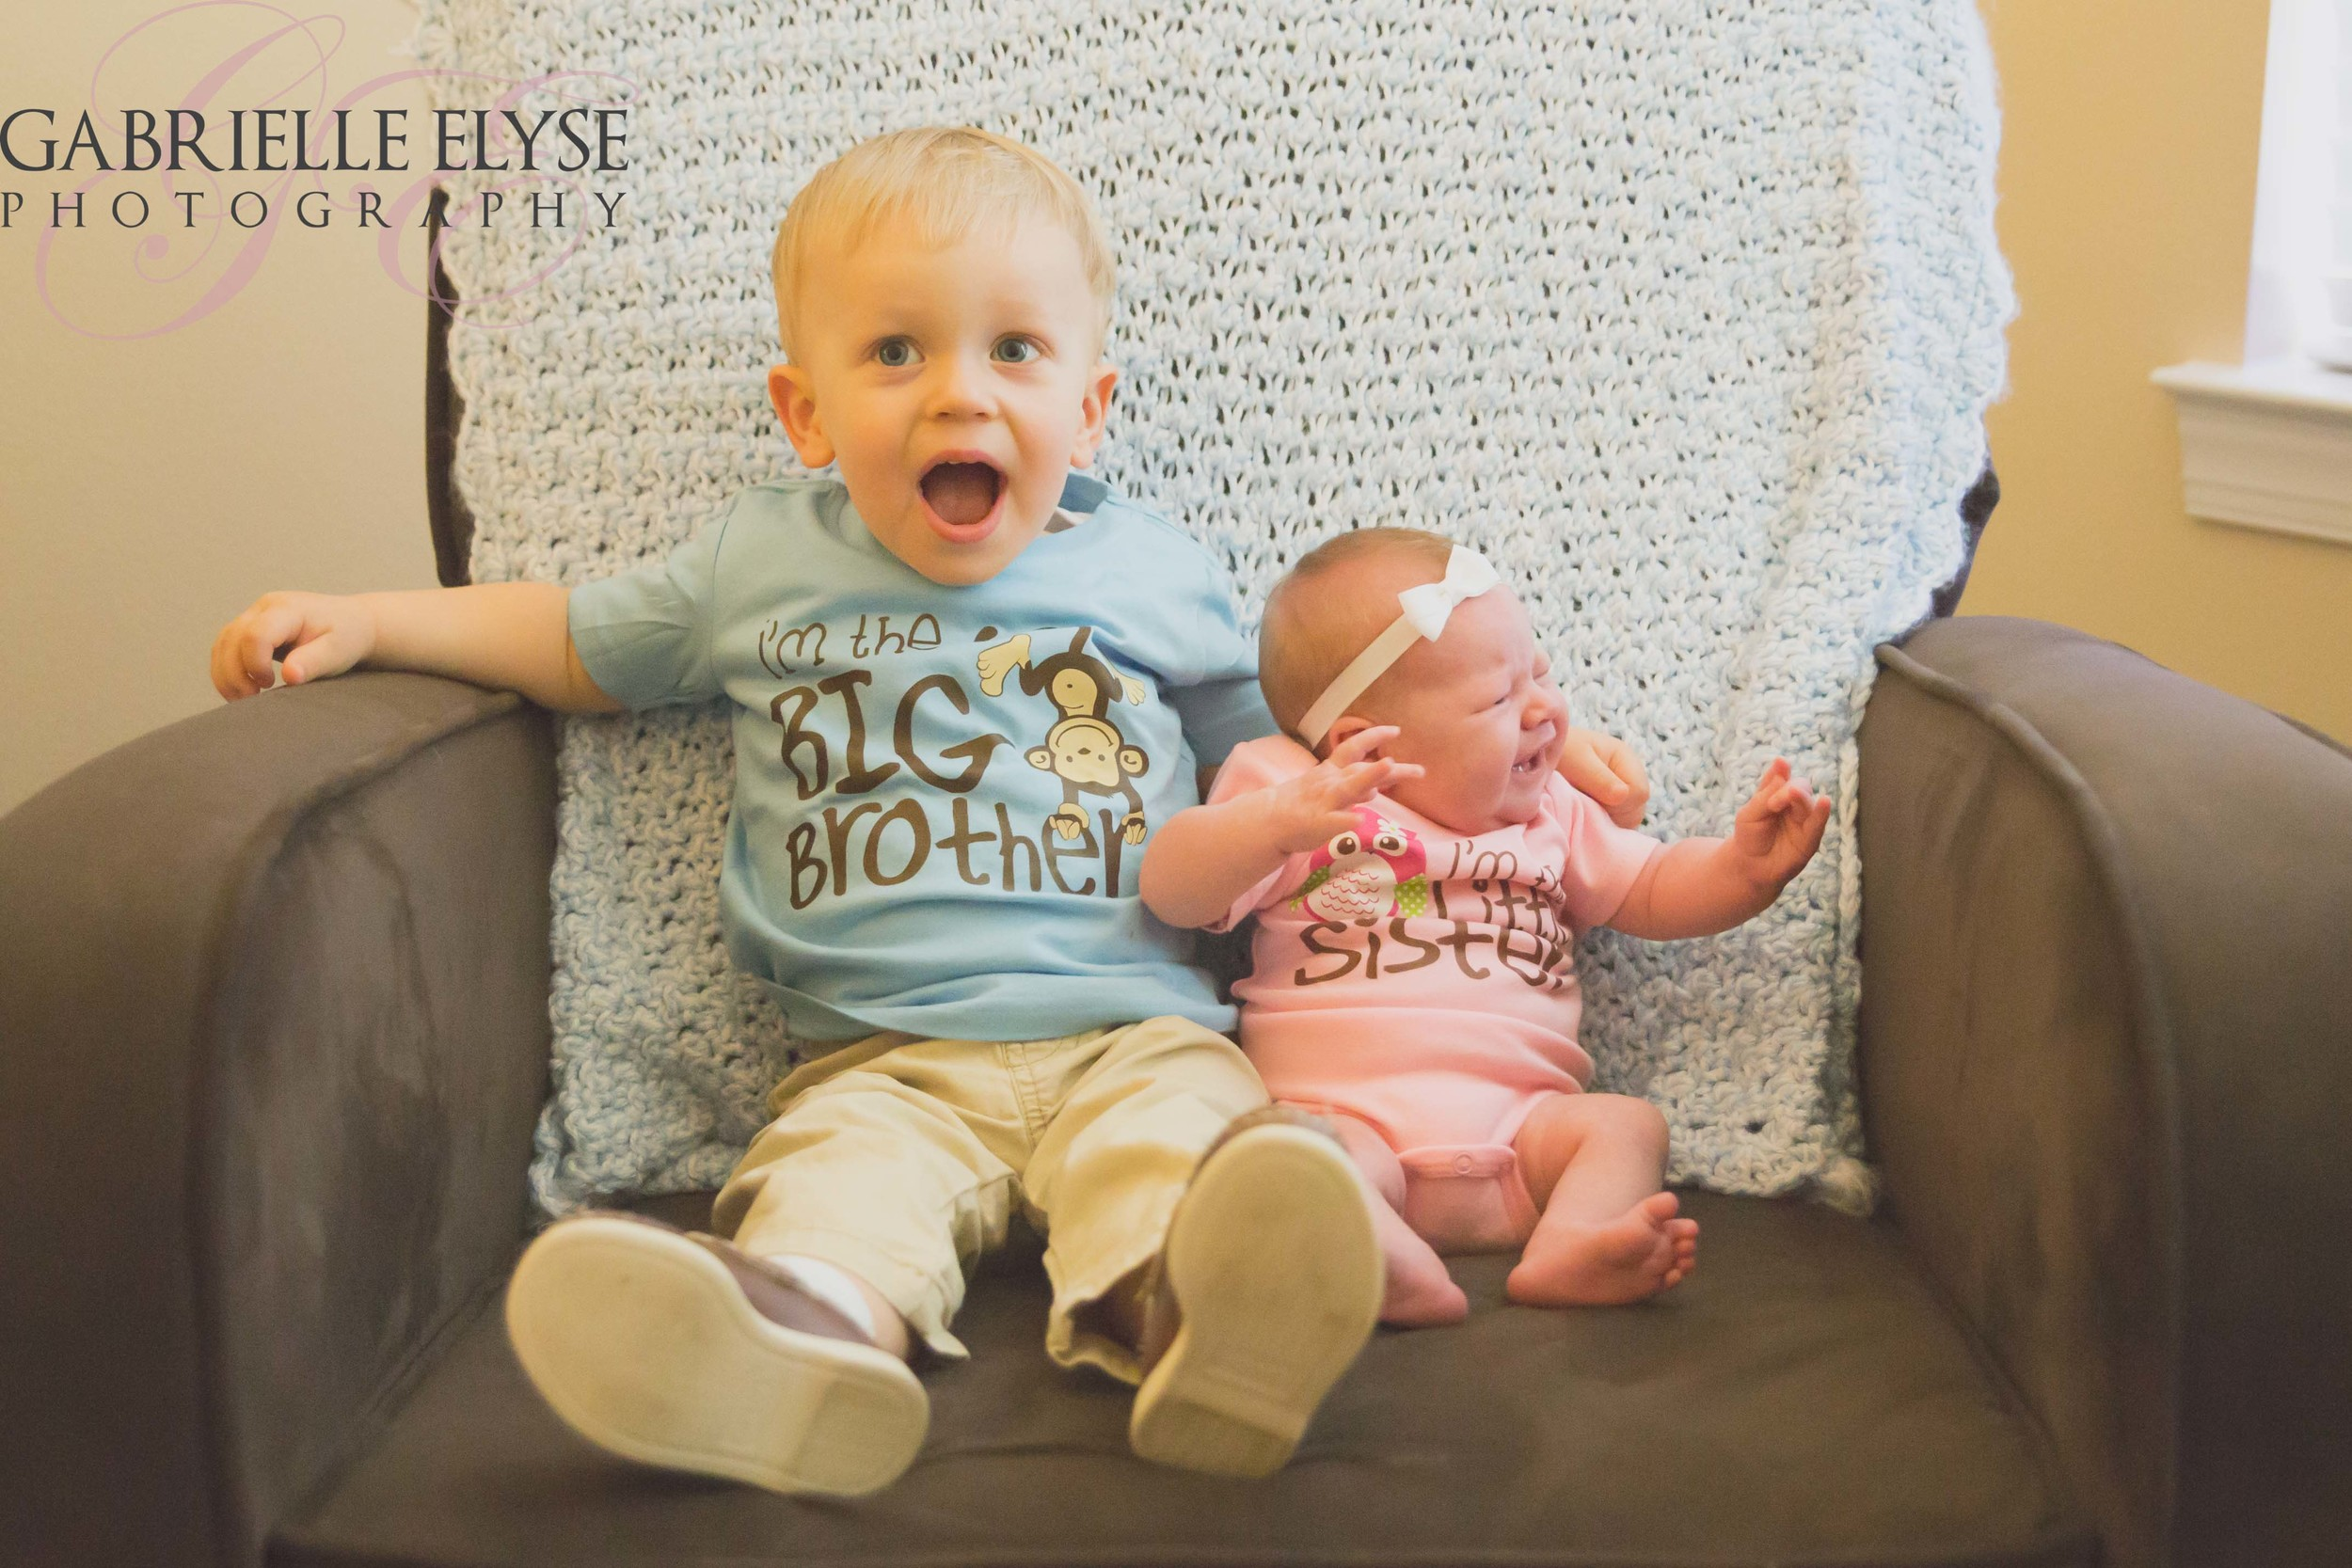 I just love his expression! He is the big brother - no doubt about it :